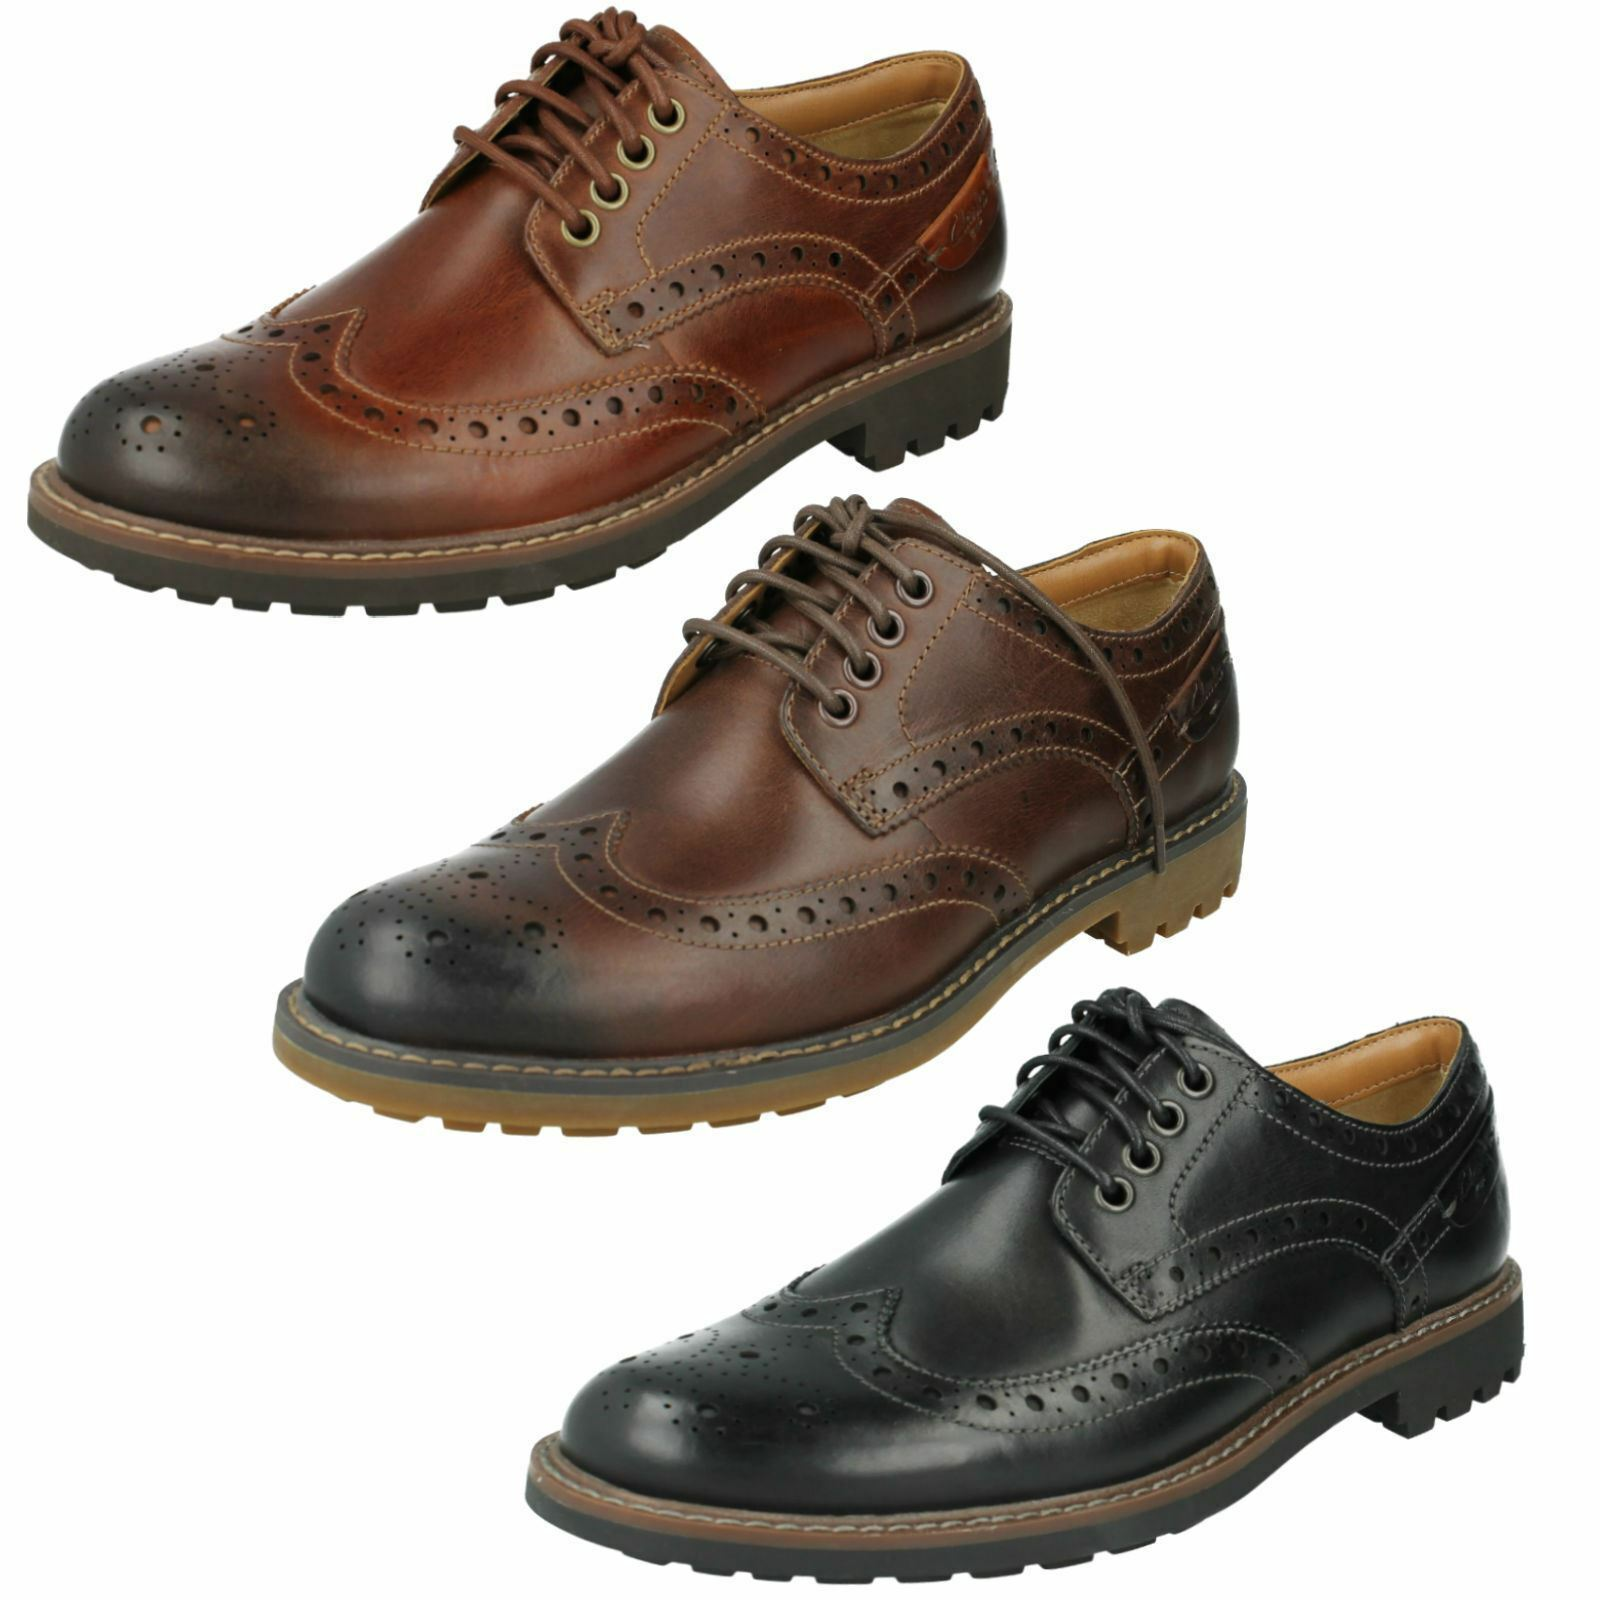 Men's Clarks Formal Shoes Style - Montacute Wing